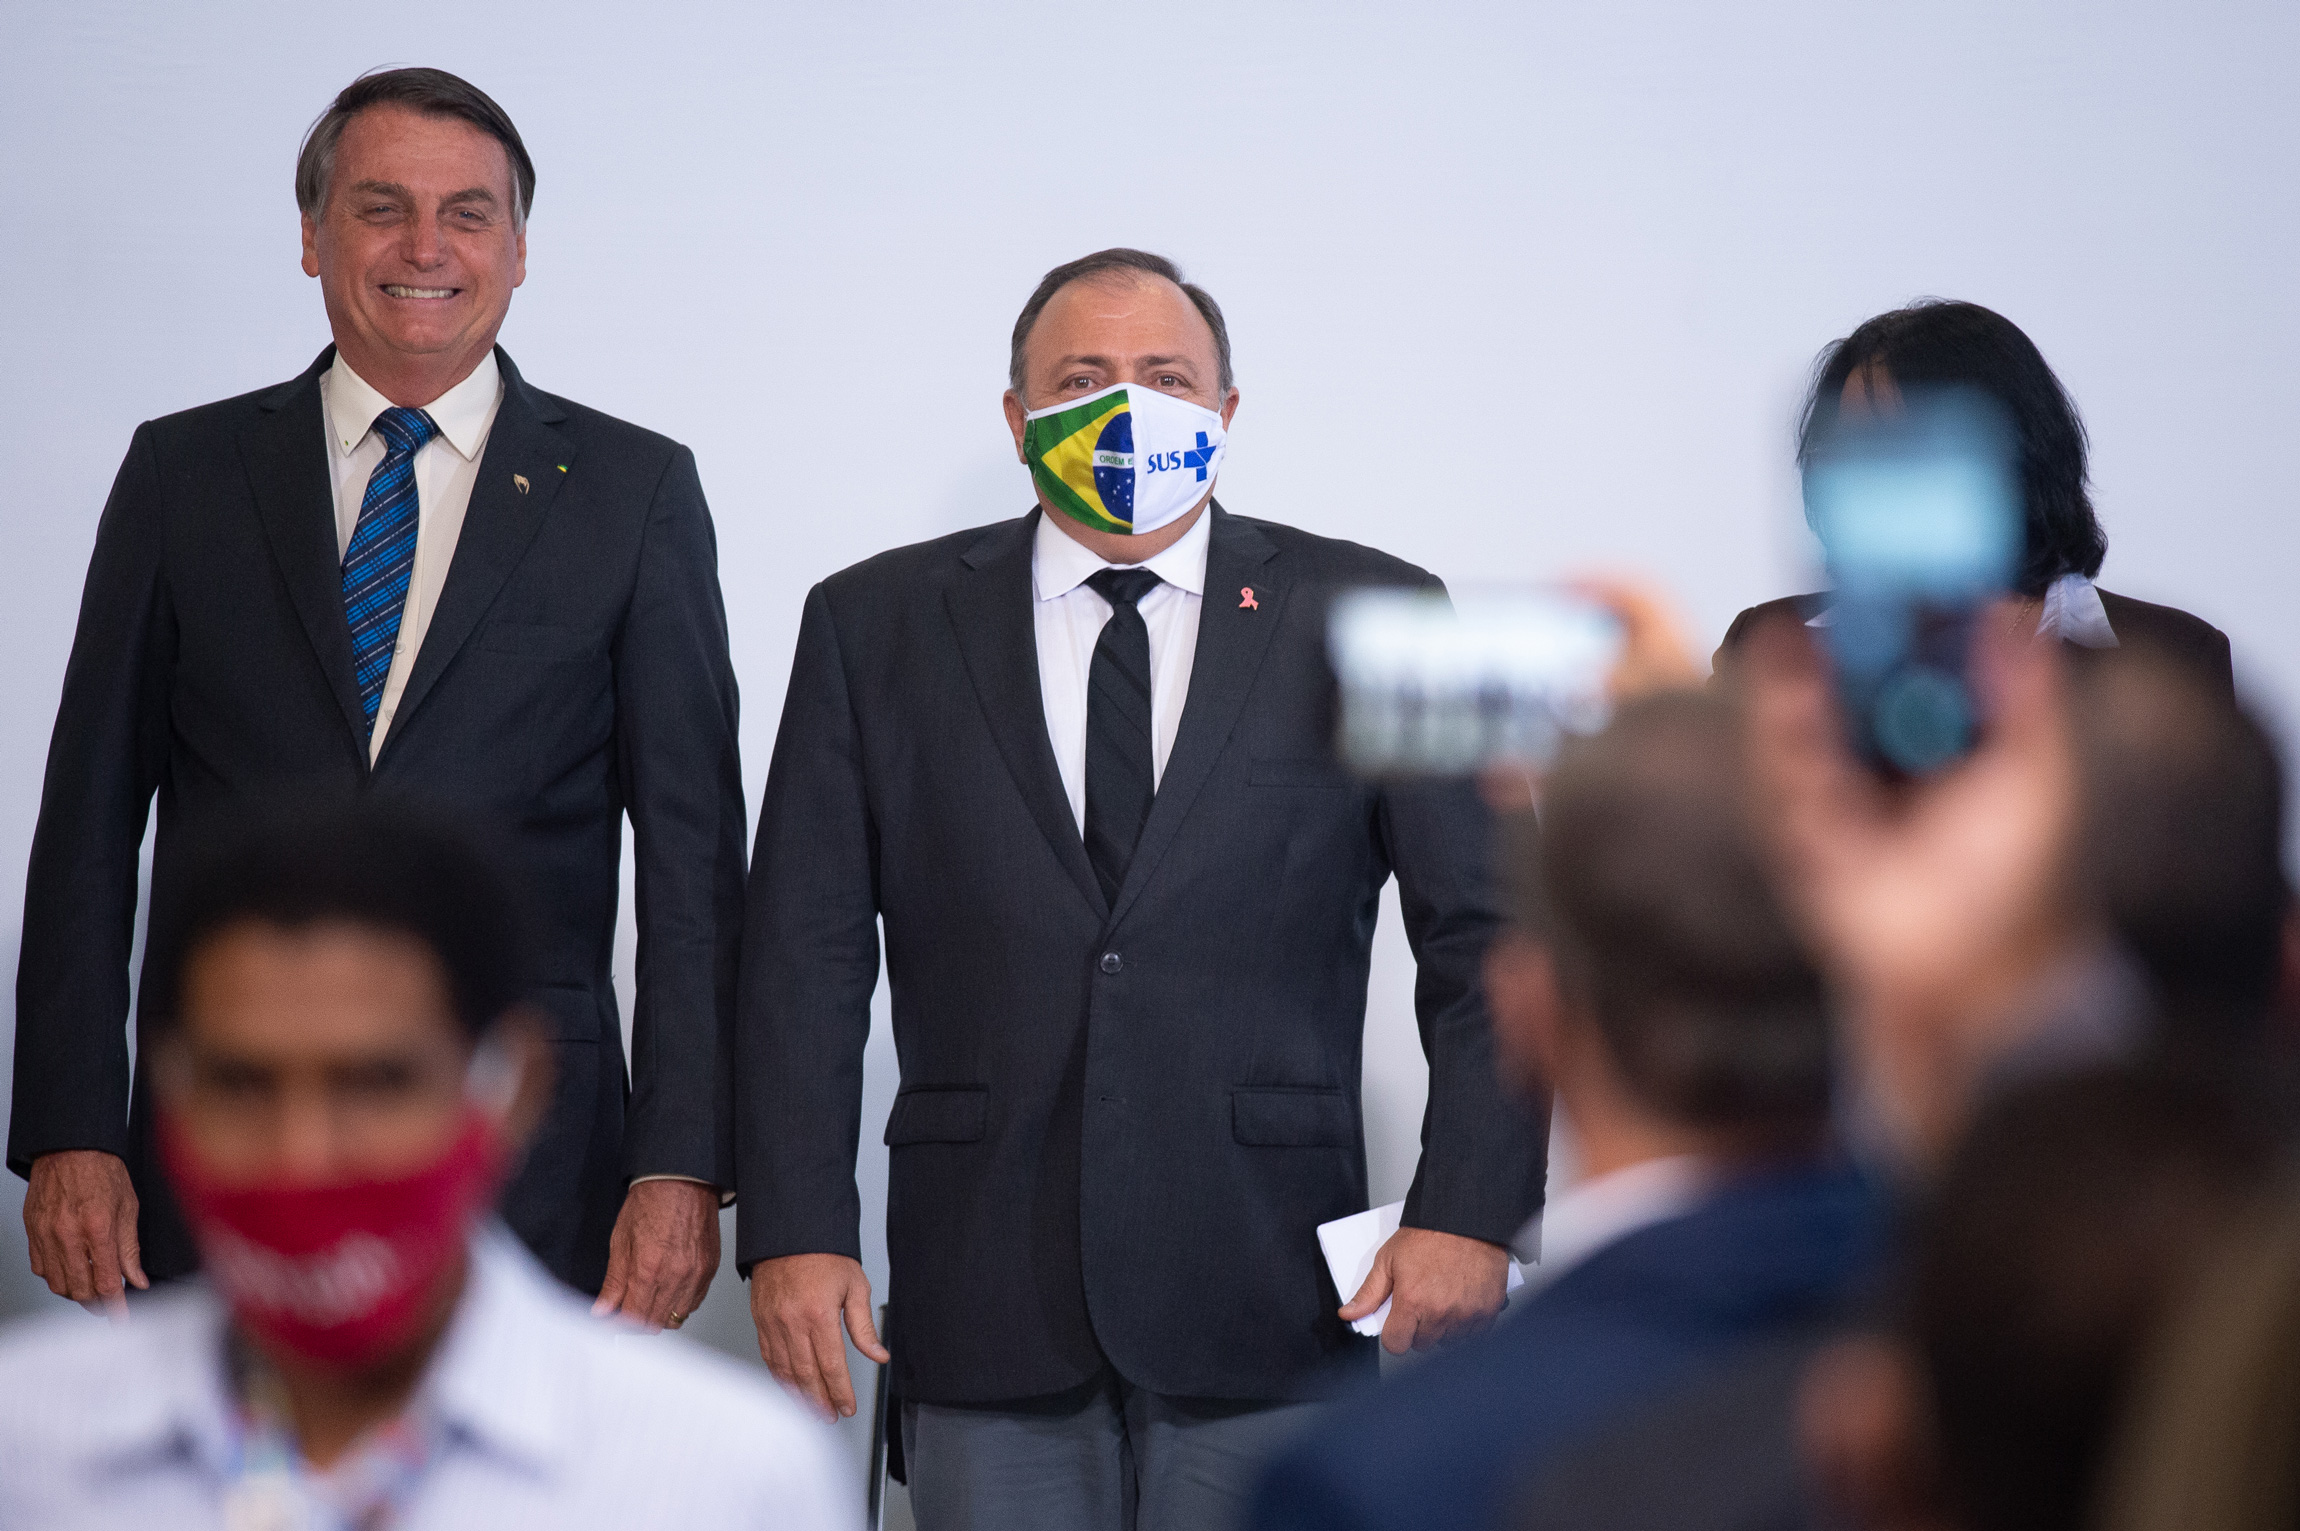 BRASILIA, BRAZIL -OCTOBER14: Jair Bolsonaro, President of Brazil, smiles and Health Minister, Eduardo Pazuello poses duringthe launching of Programa Genomas Brazilamidst the coronavirus(COVID-19) pandemic at the Planalto Palace on Octuber 14, 2020 in Brasilia.Brazil has over 5.140,000 confirmed positive cases of Coronavirus and has over 151,747 deaths. (Photo by Andressa Anholete/Getty Images)